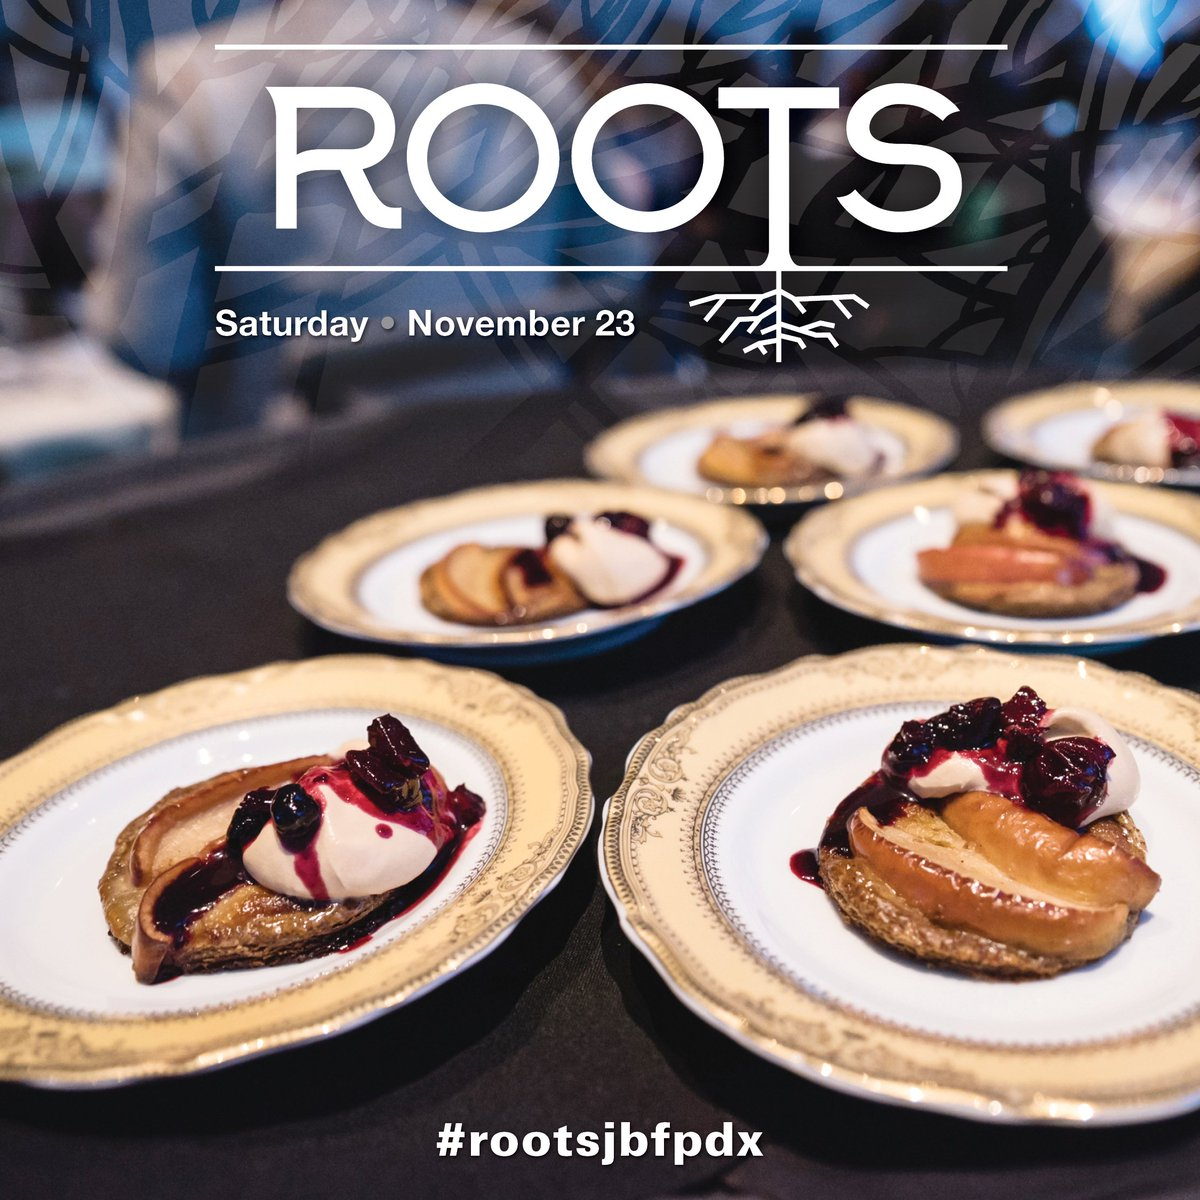 Have dinner with us! We're teaming up with 11 James Beard recognized chefs for ROOTS, a dream dining experience on 11/23 at @TheNinesHotel. Ft. Stumptown coffee, cocktails, & a 10-course dinner. Proceeds benefit @urbangleaners #rootsjbfpdx Tickets here: https://t.co/8LEUTeBuiE https://t.co/3r5rNznEkx